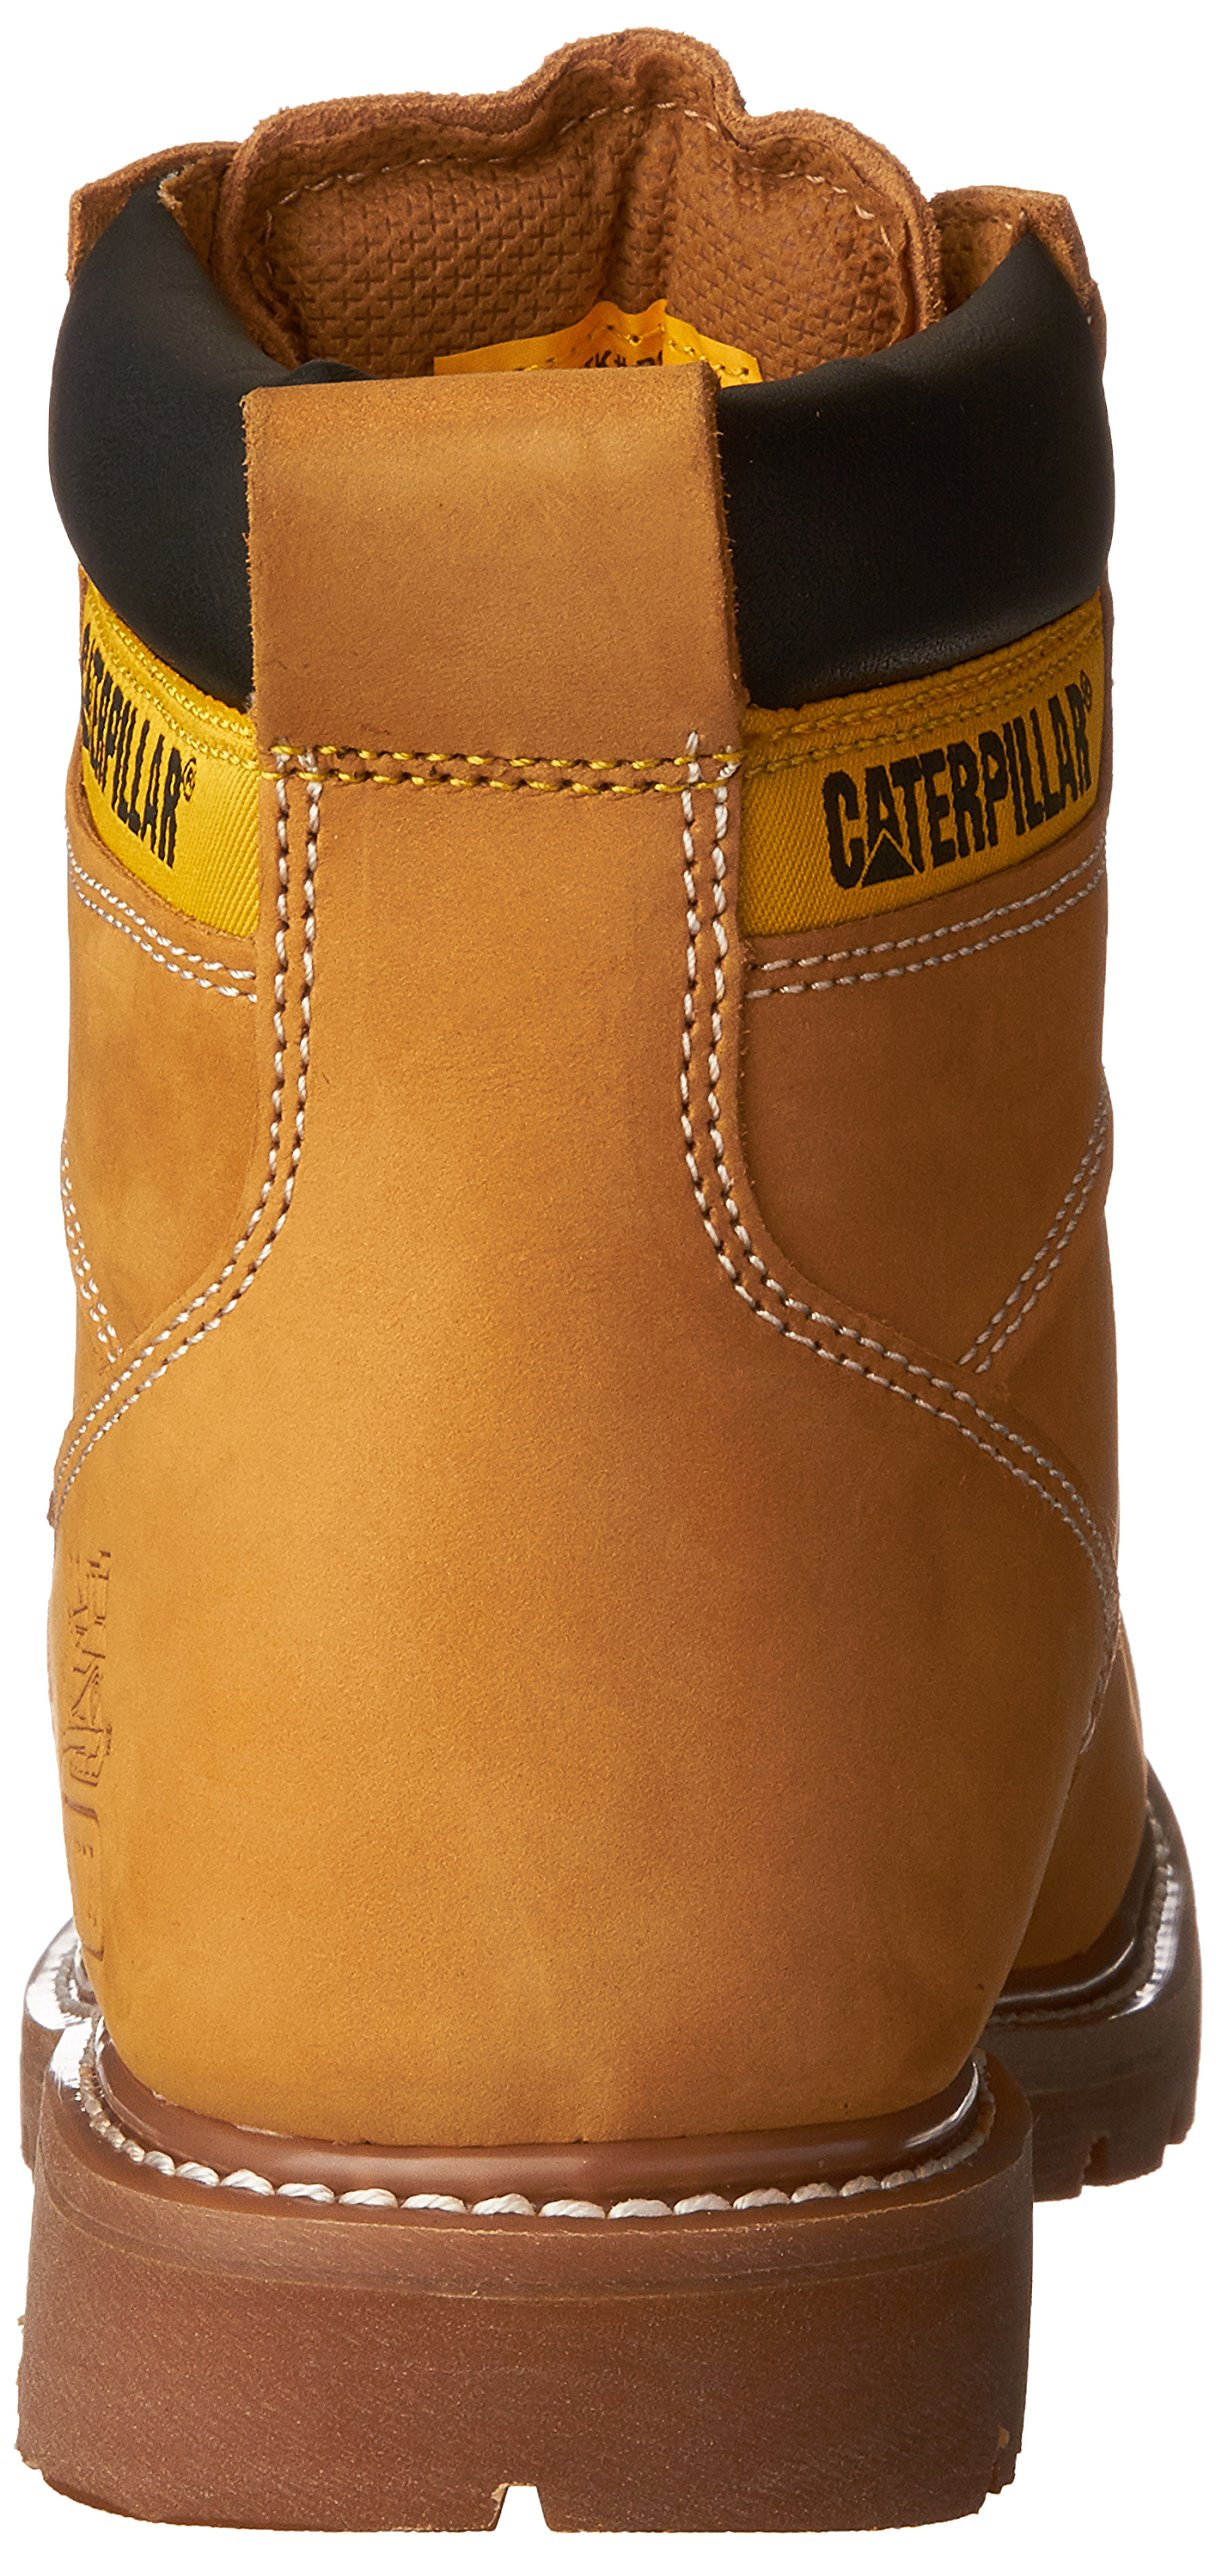 72d72a95711 Caterpillar Men's Second Shift Steel Toe Work Boot - P89162 < Work ...